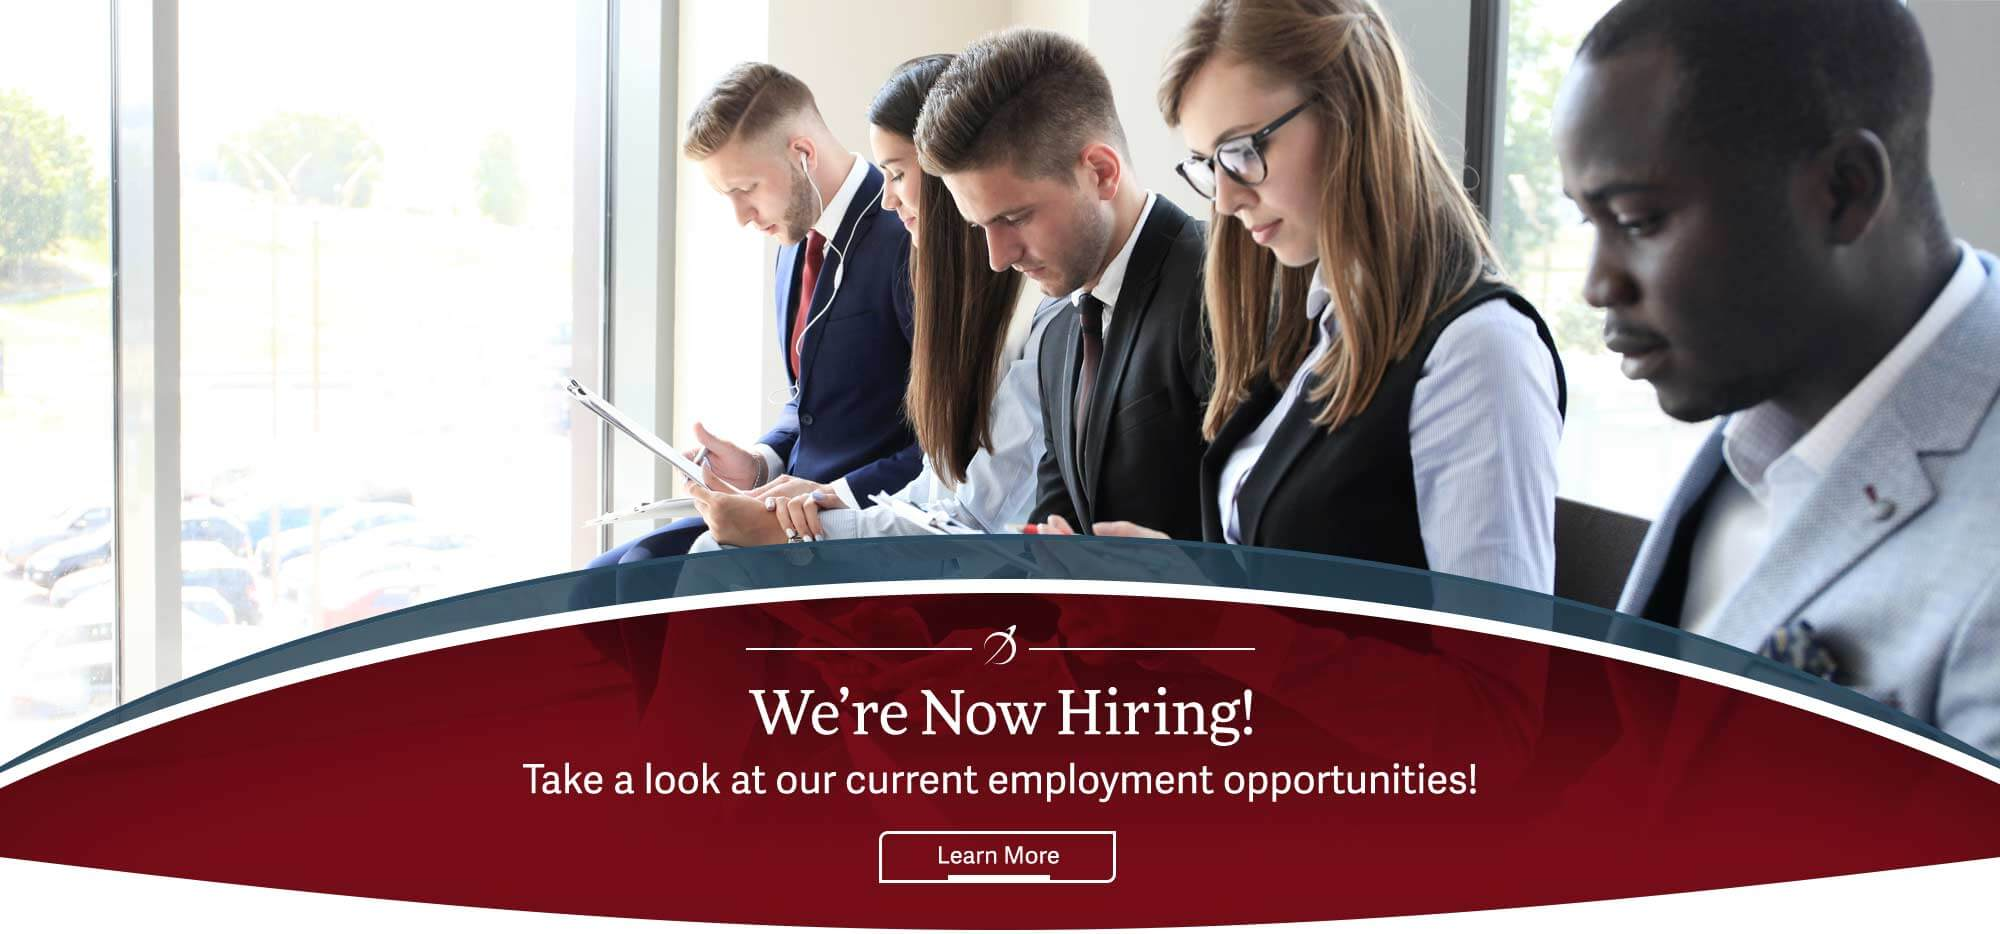 We're Now Hiring! Take a look at our current employment oppotunities!